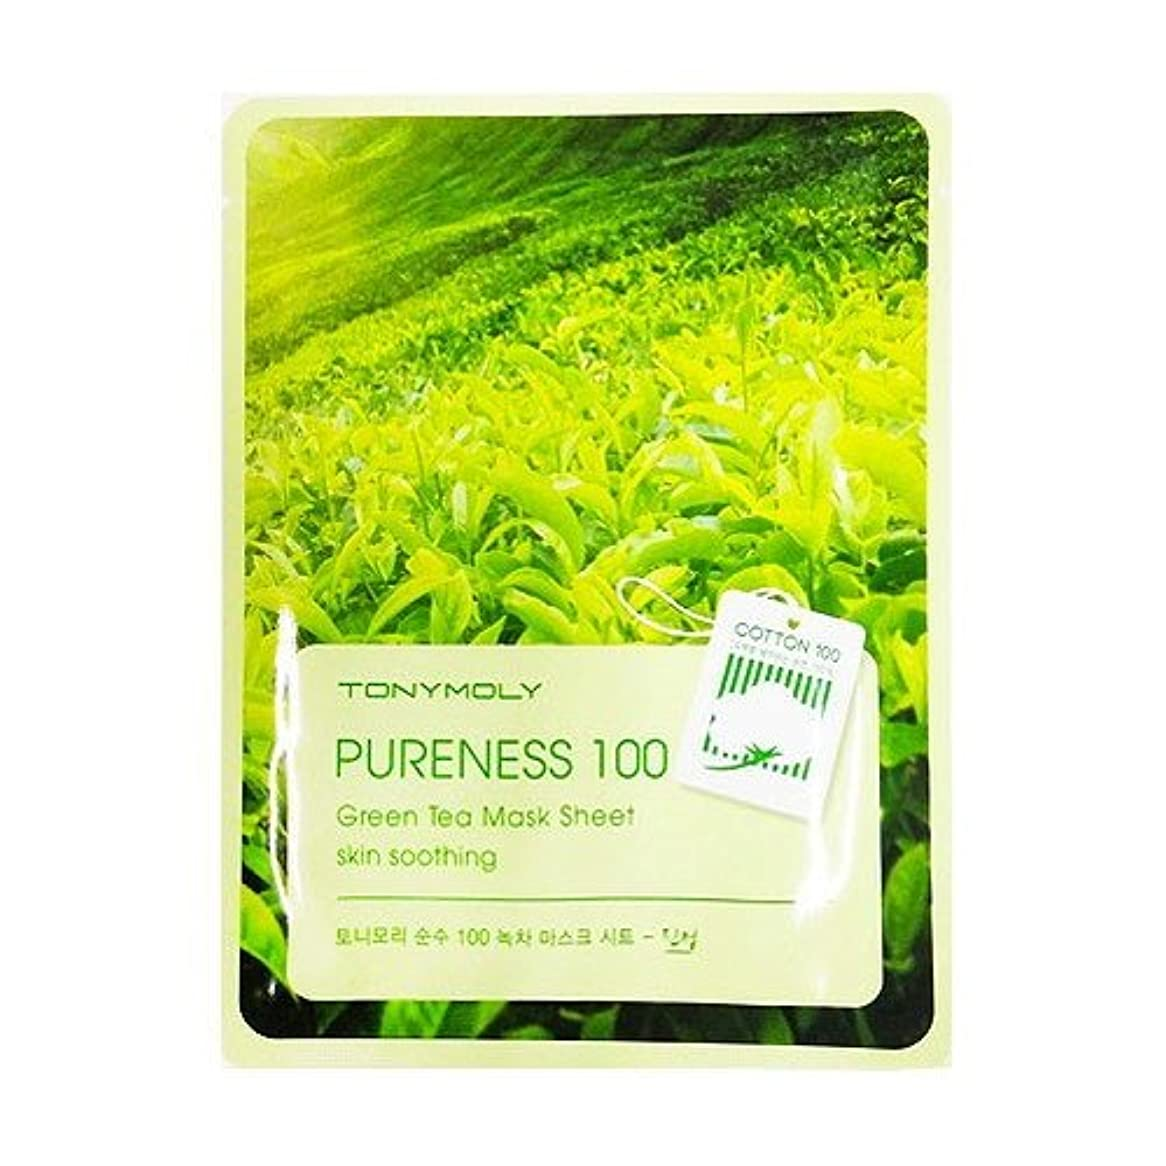 ホームレス責優れました(3 Pack) TONYMOLY Pureness 100 Green Tea Mask Sheet Skin Soothing (並行輸入品)